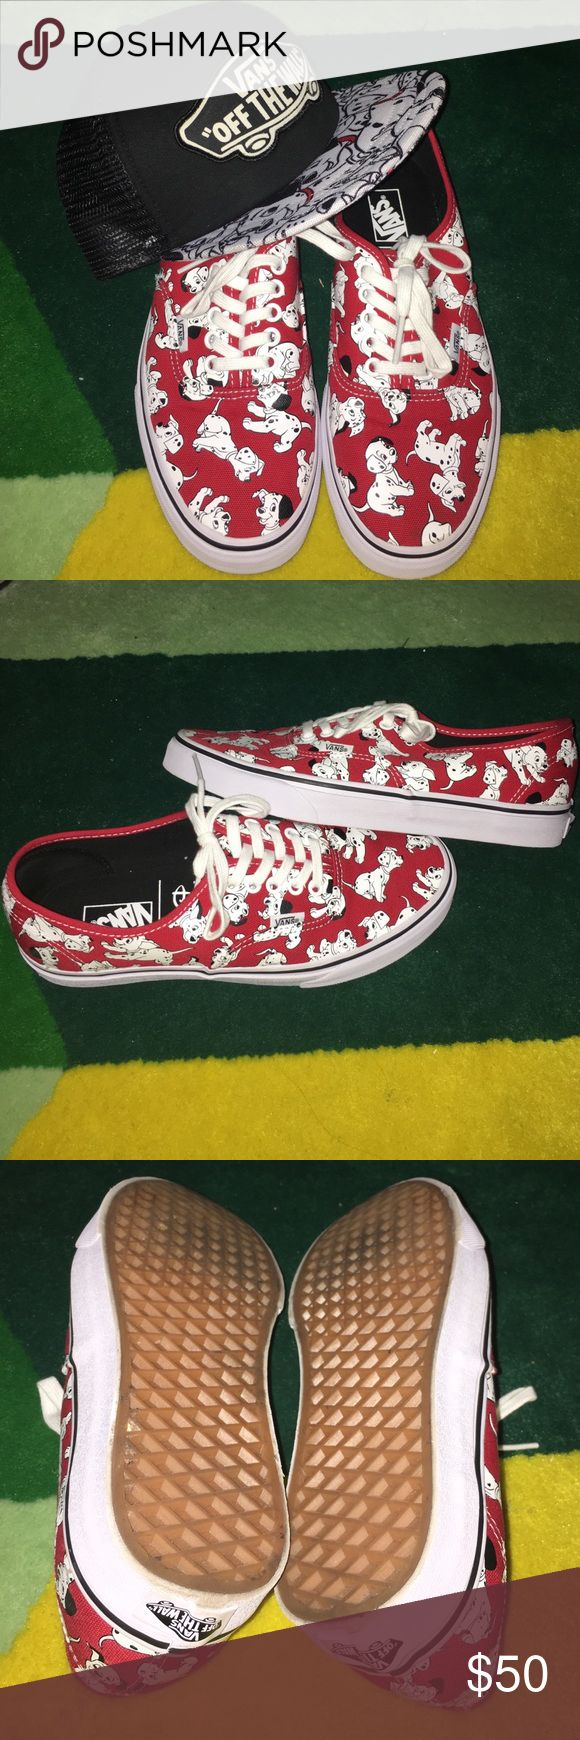 Vans Dalmatian shoes Dalmatian shoes size 9. Only used once at Disney. With matching hat. Really cute. Price is for the shoes and the hat in combination. Vans Shoes Sneakers